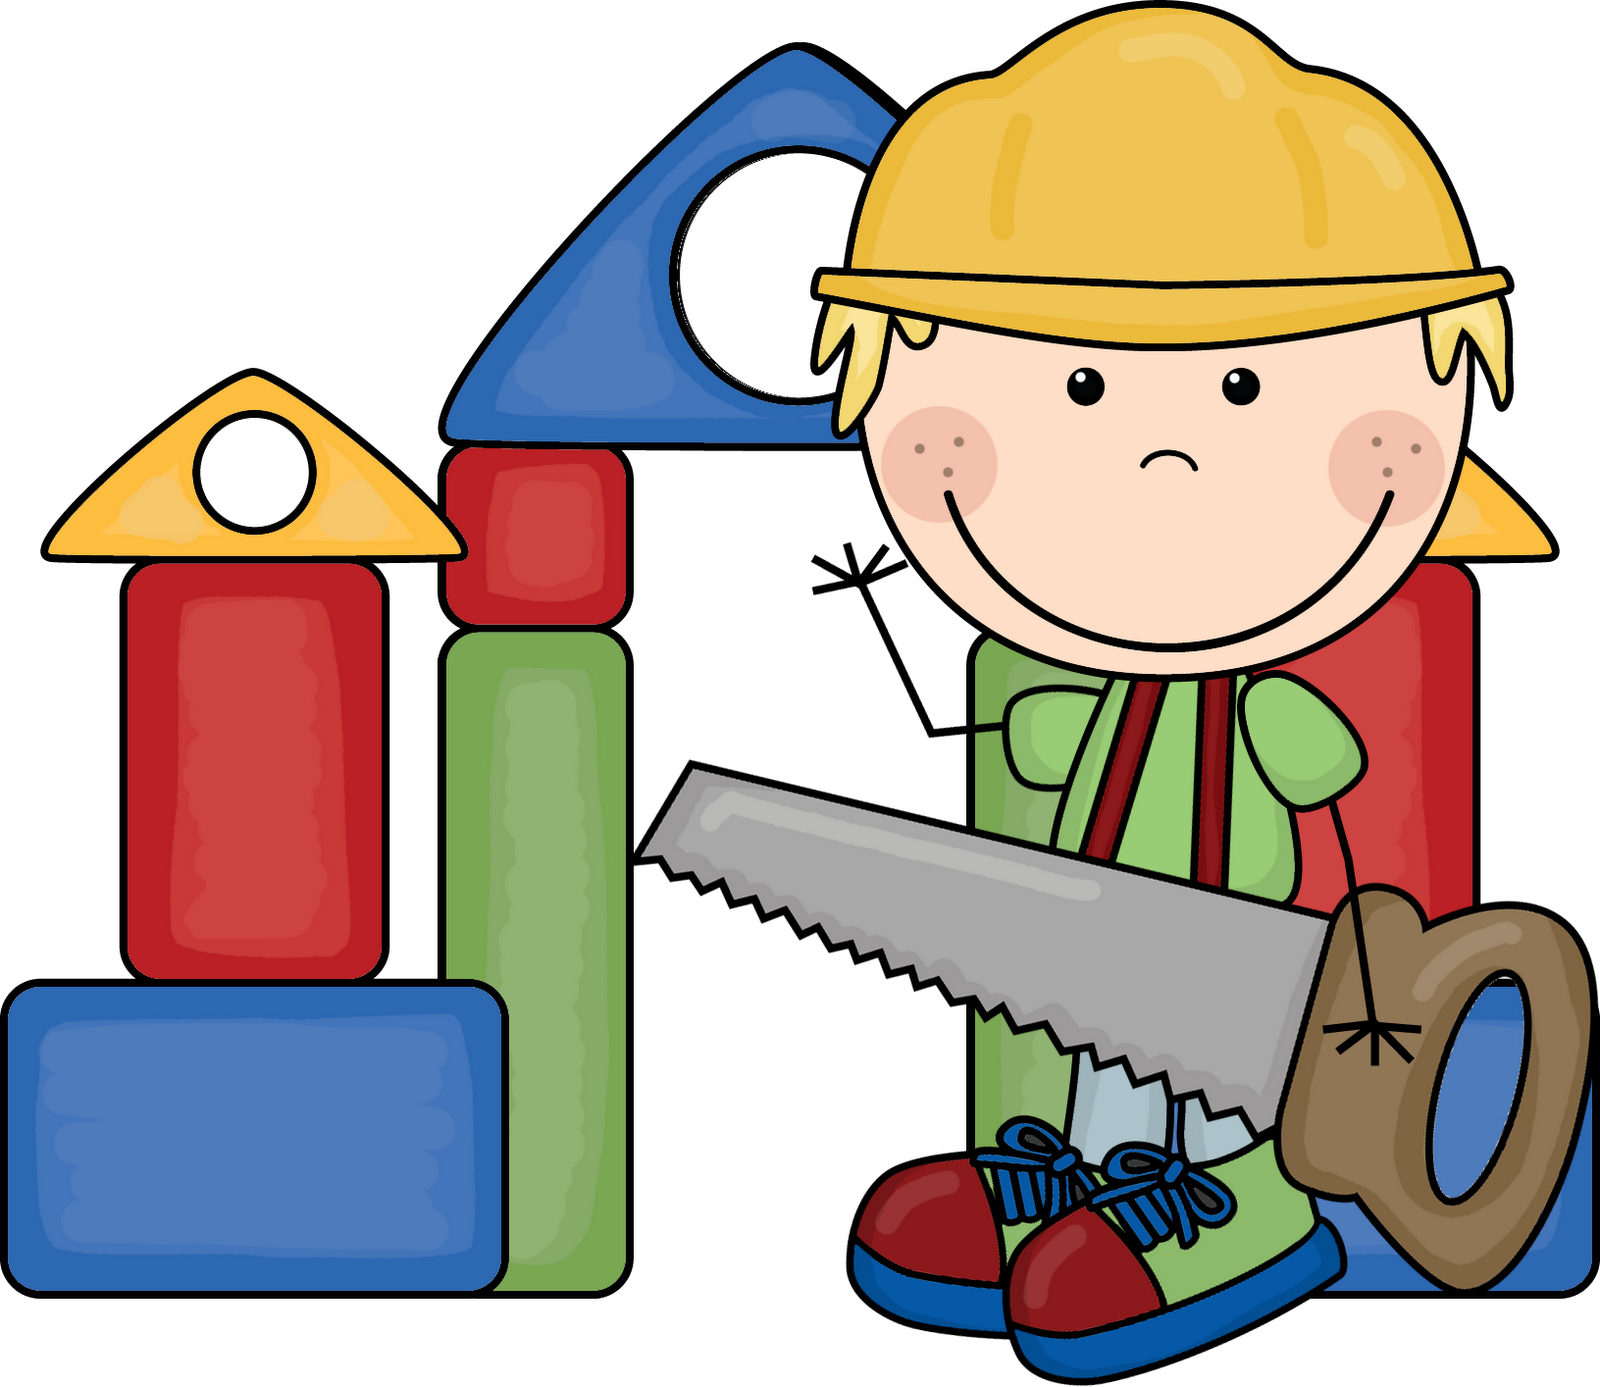 April ethnic kids clipart png free download Kids Working Together Clipart | Free download best Kids Working ... png free download